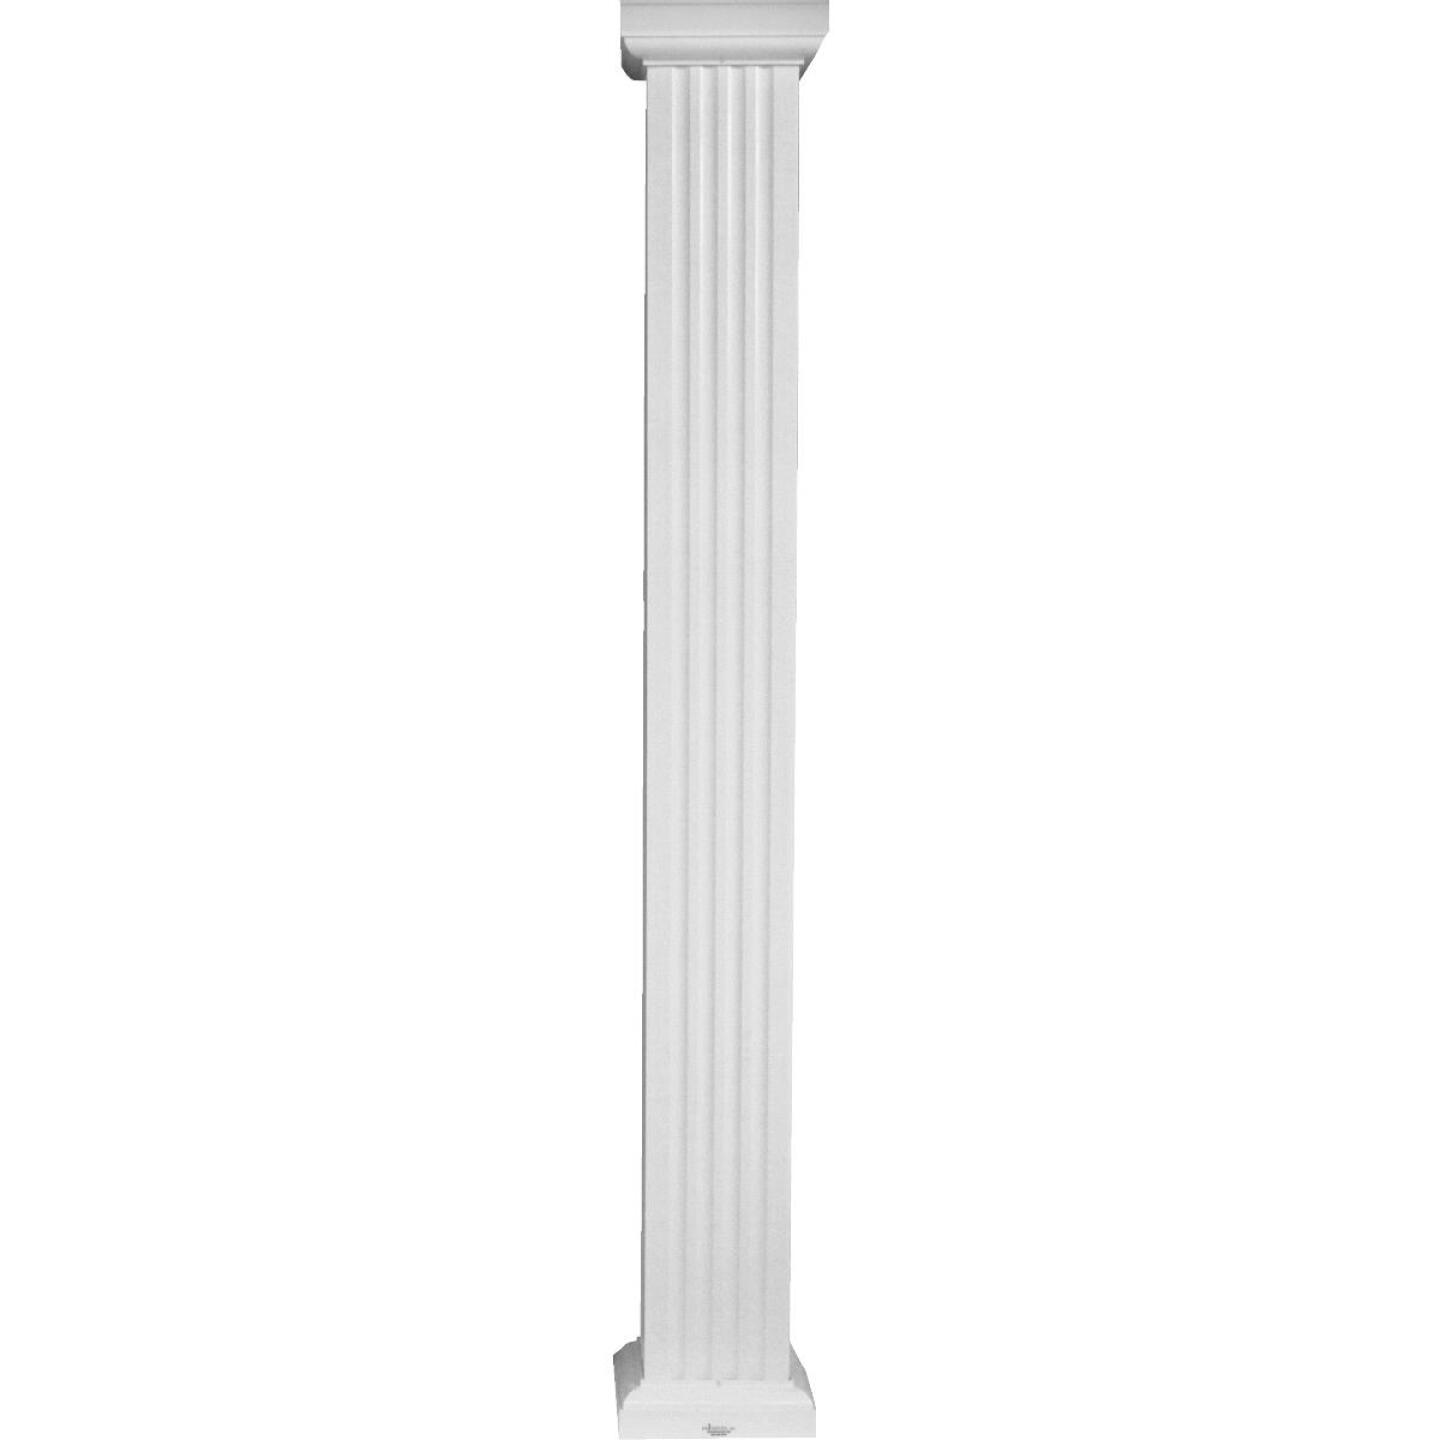 Crown Column 8 In. x 9 Ft. White Powder Coated Square Fluted Aluminum Column Image 1